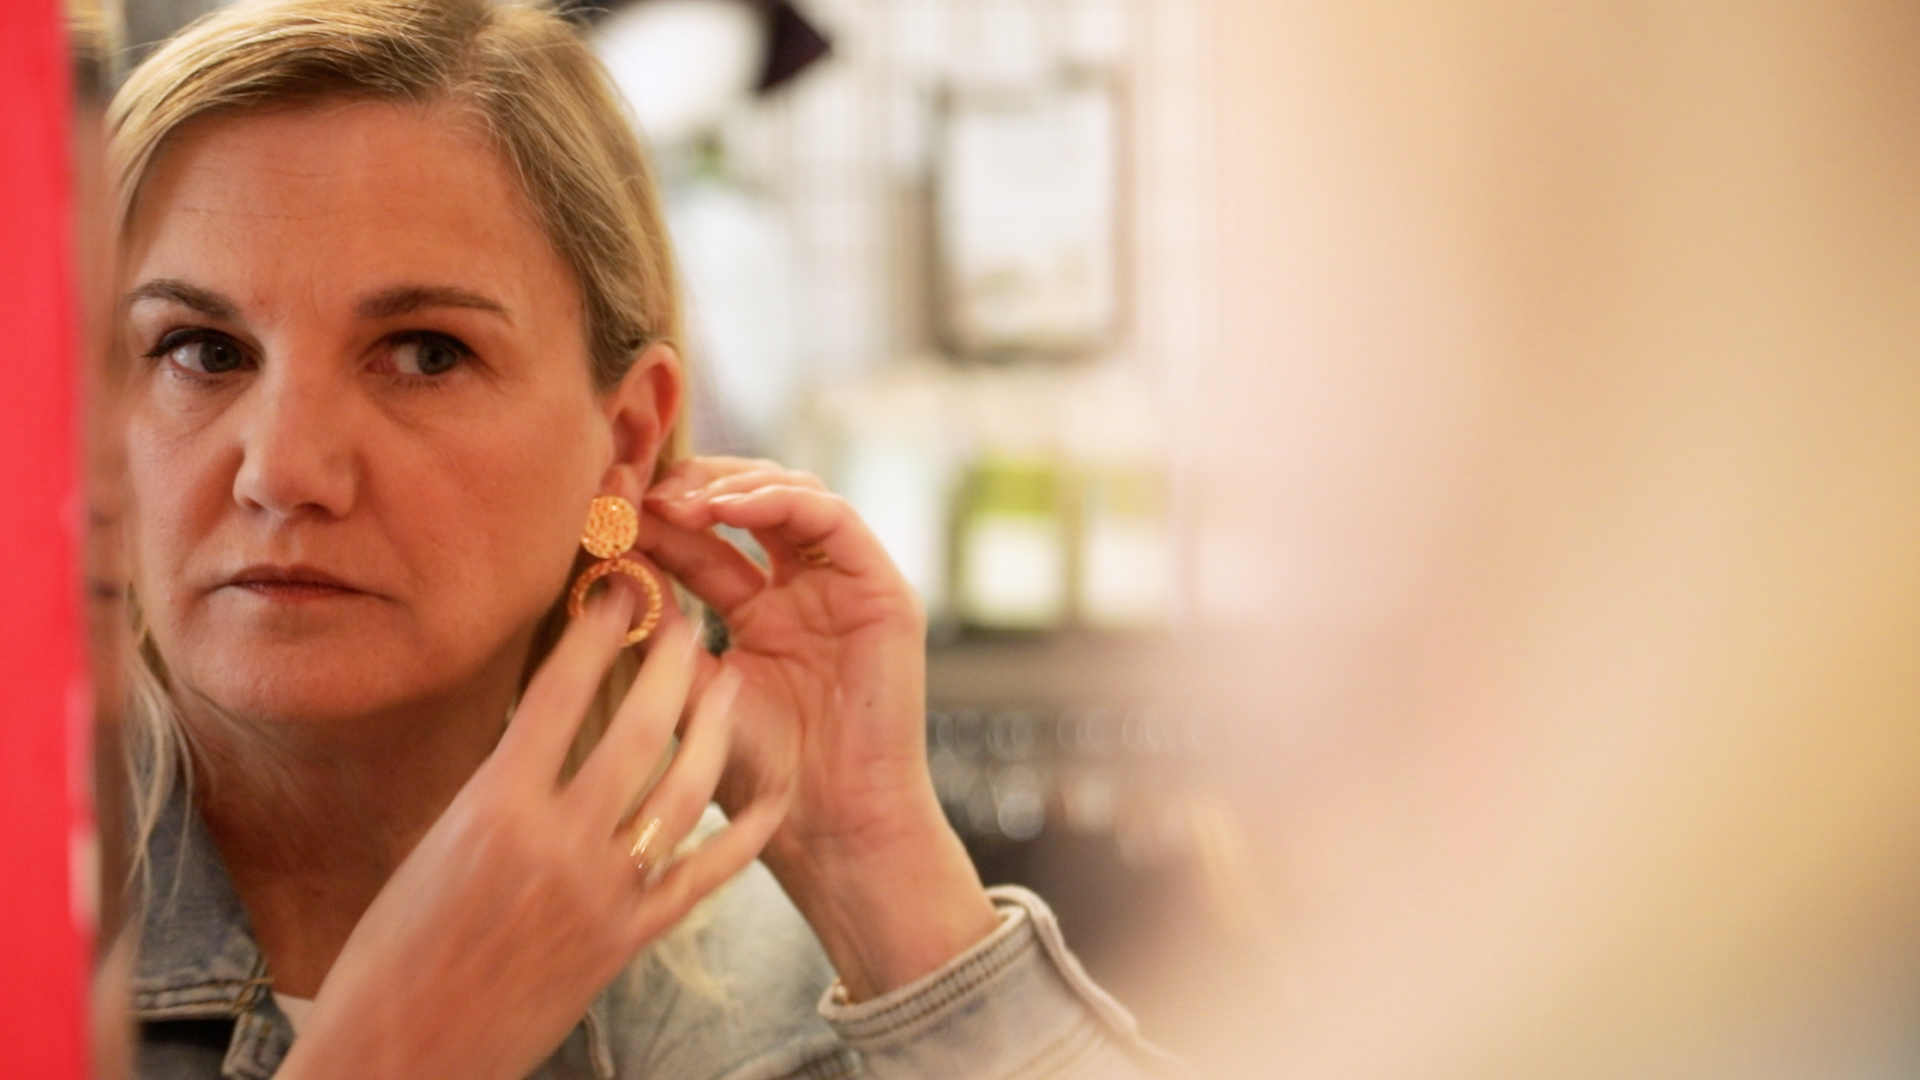 Meet the Artist: Julie Stephens - Jewellery Designer at in.cube8r who sells handmade jewellery in our Melbourne store